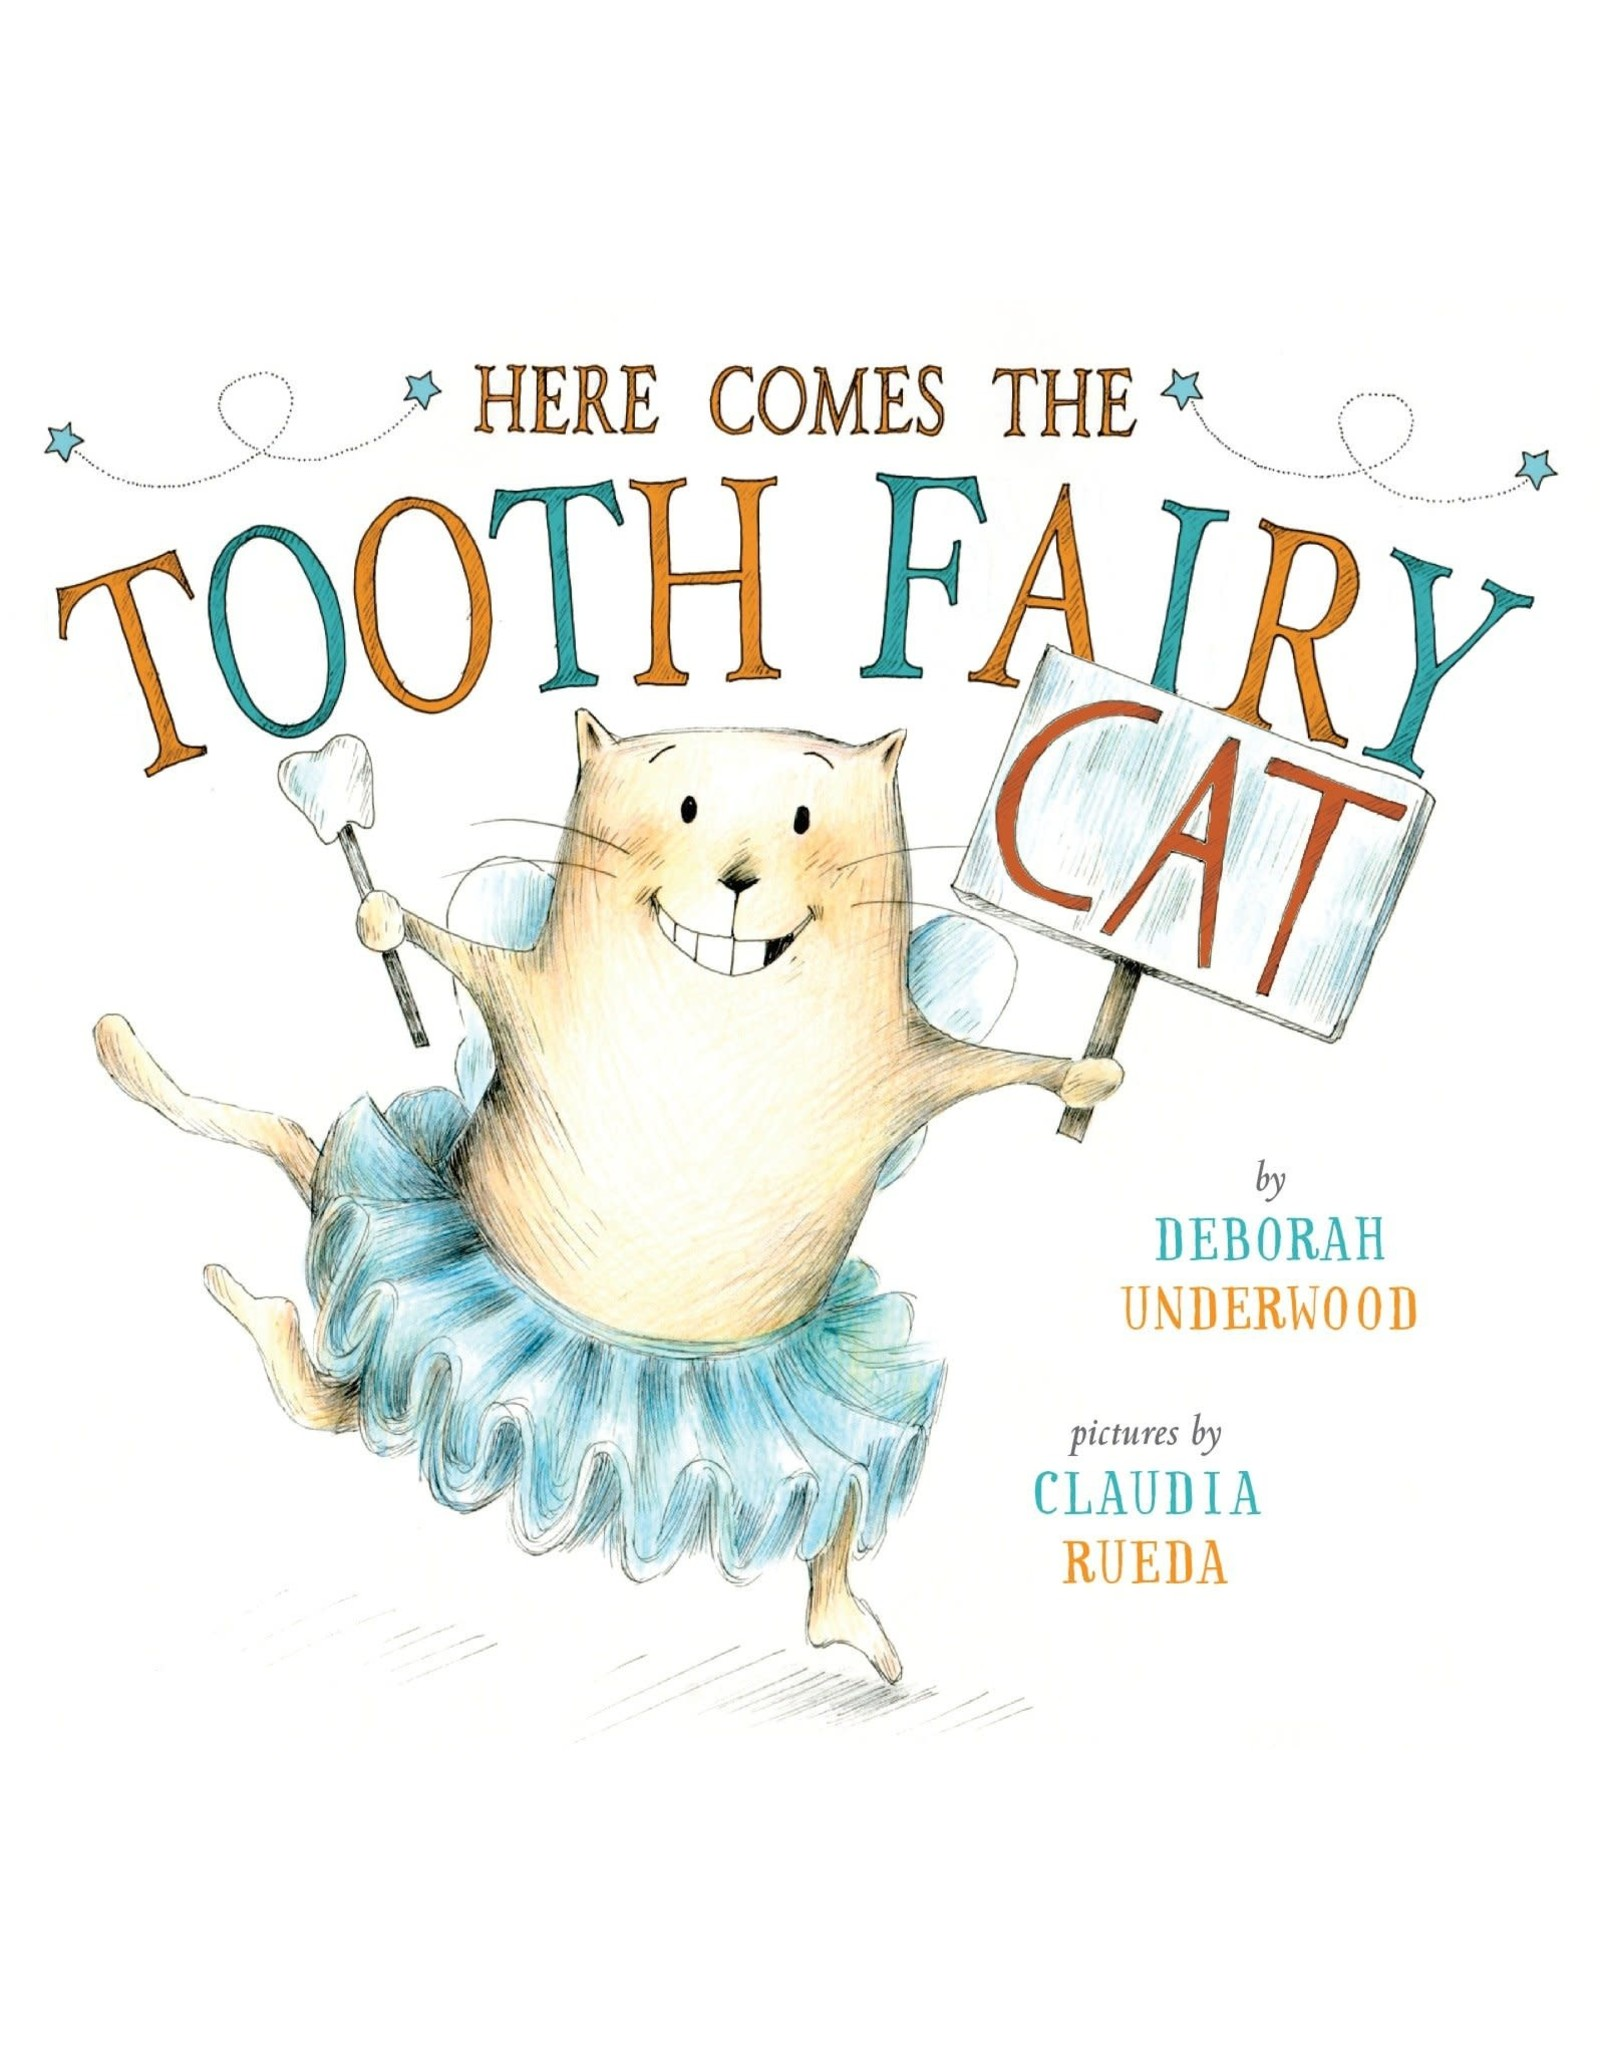 Penguin Random House Here Comes the Tooth Fairy Cat